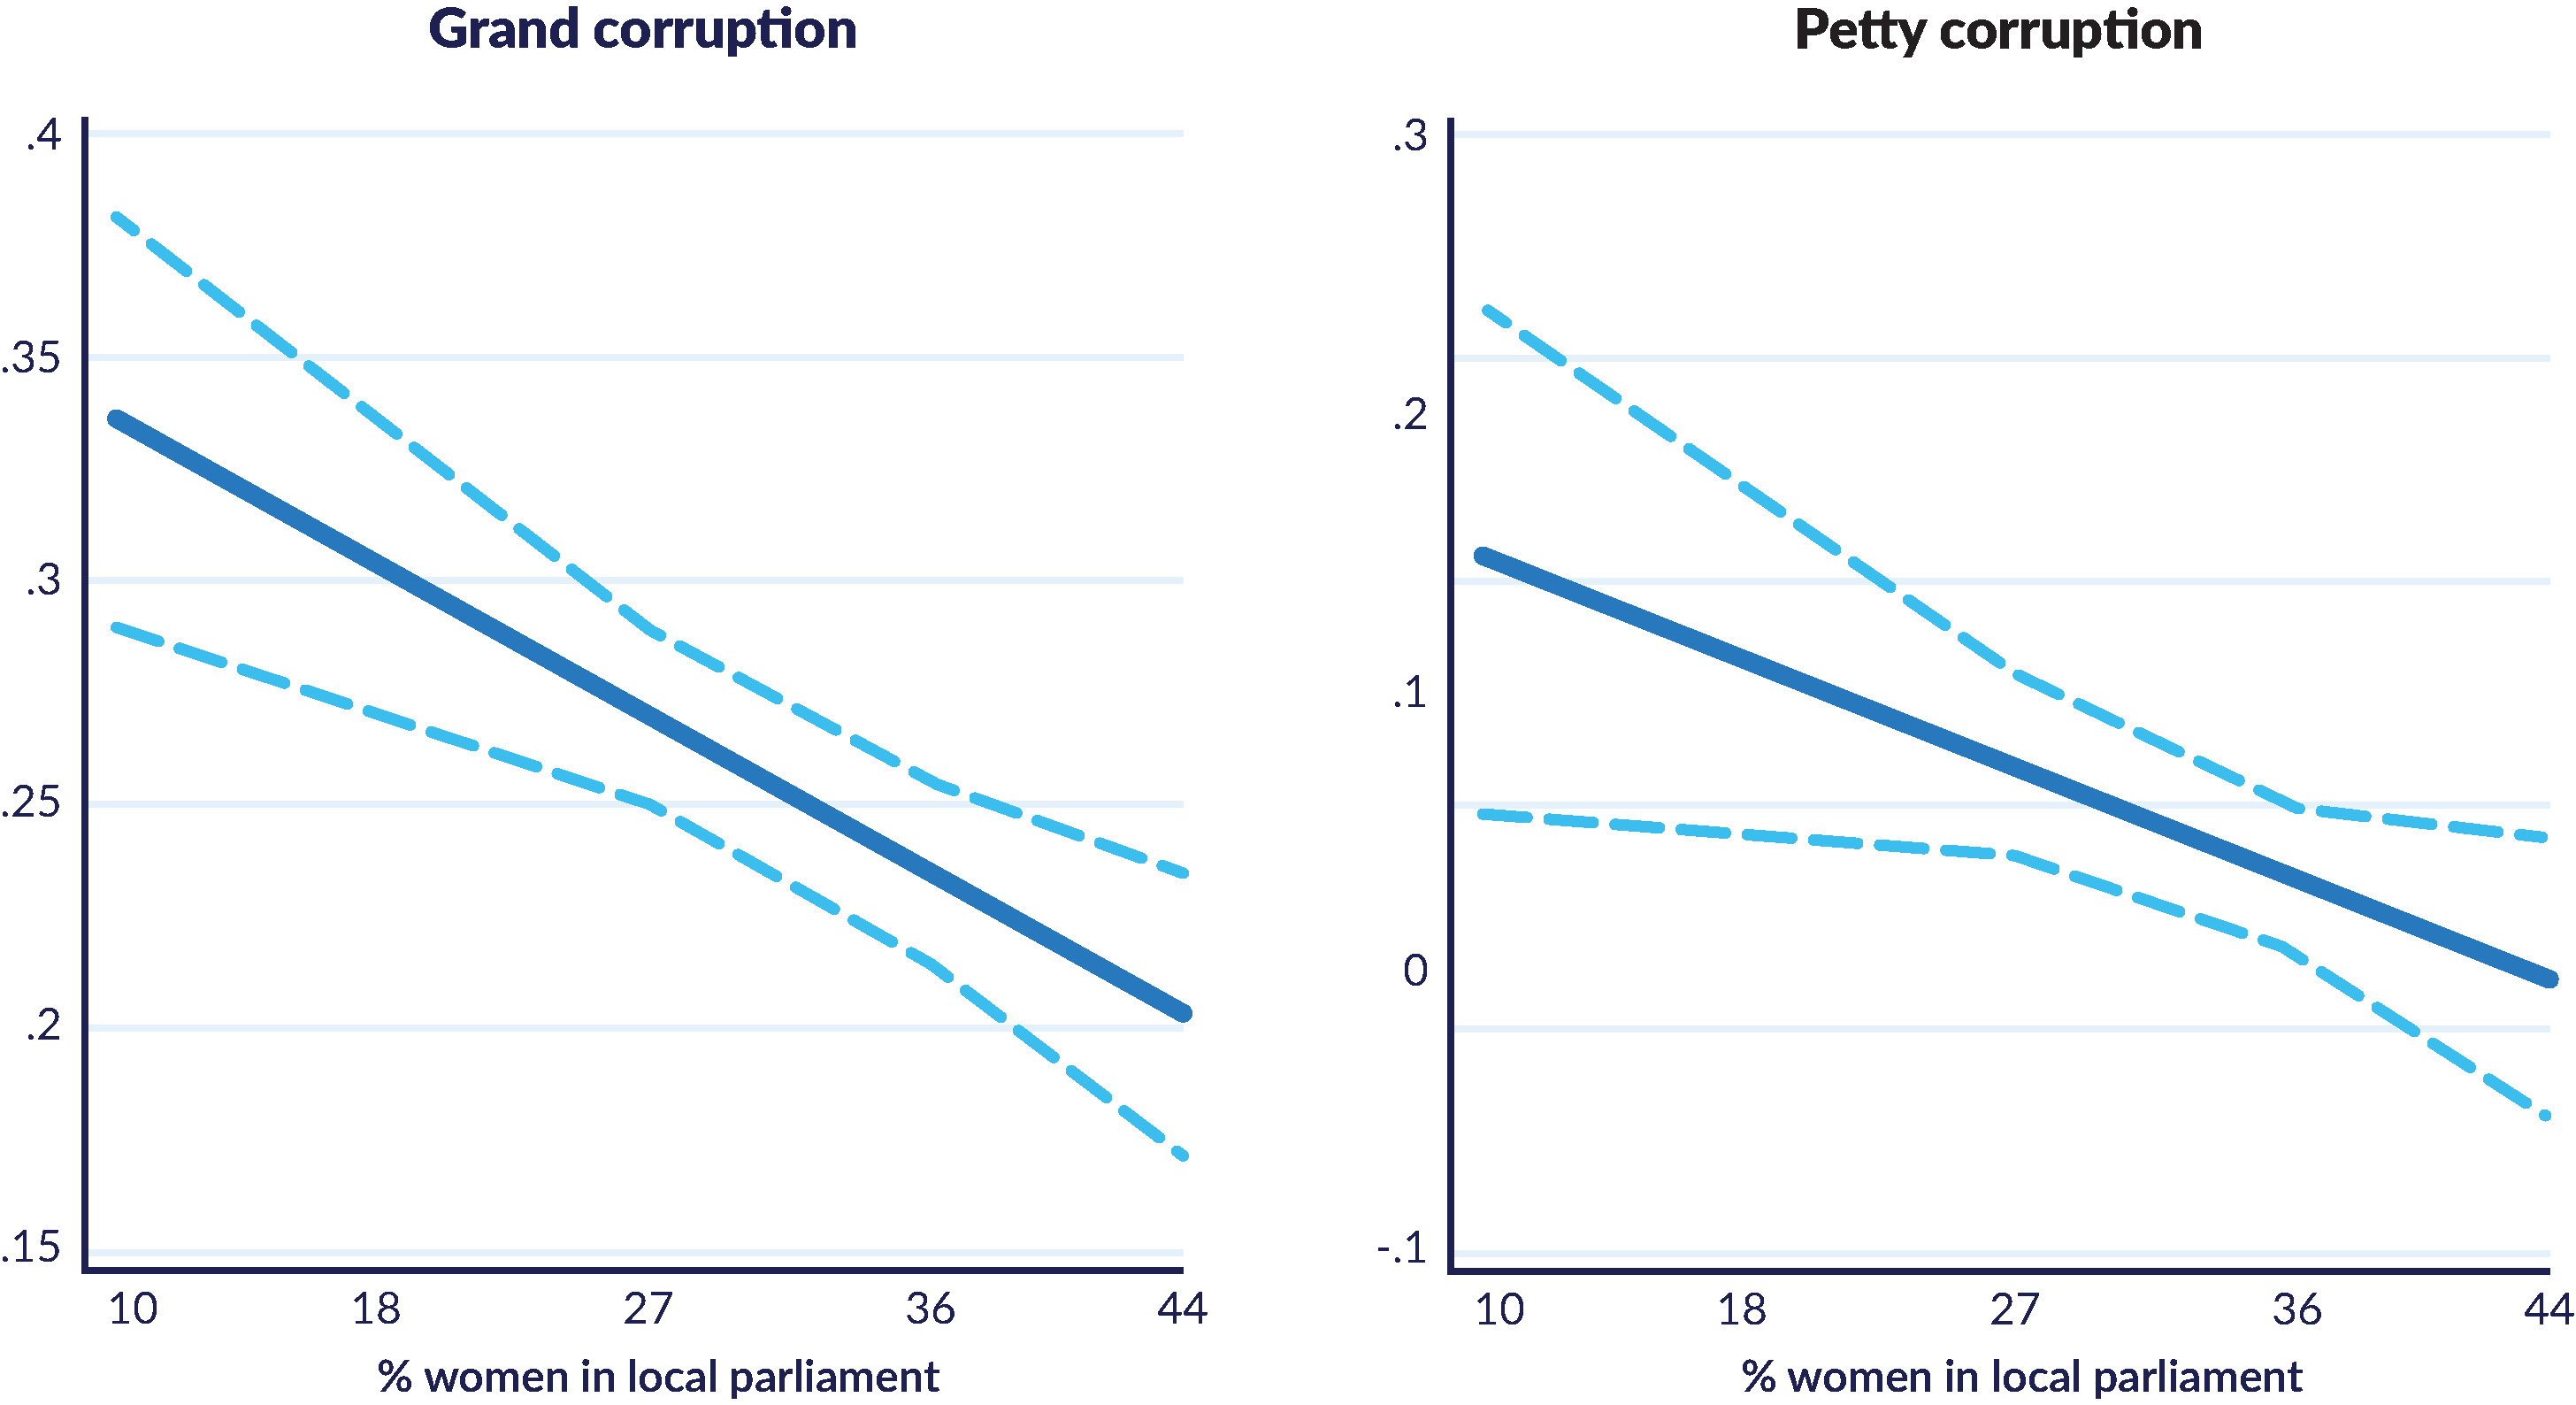 Graphs showing how relationship between women local parliament and grand and petty corruption